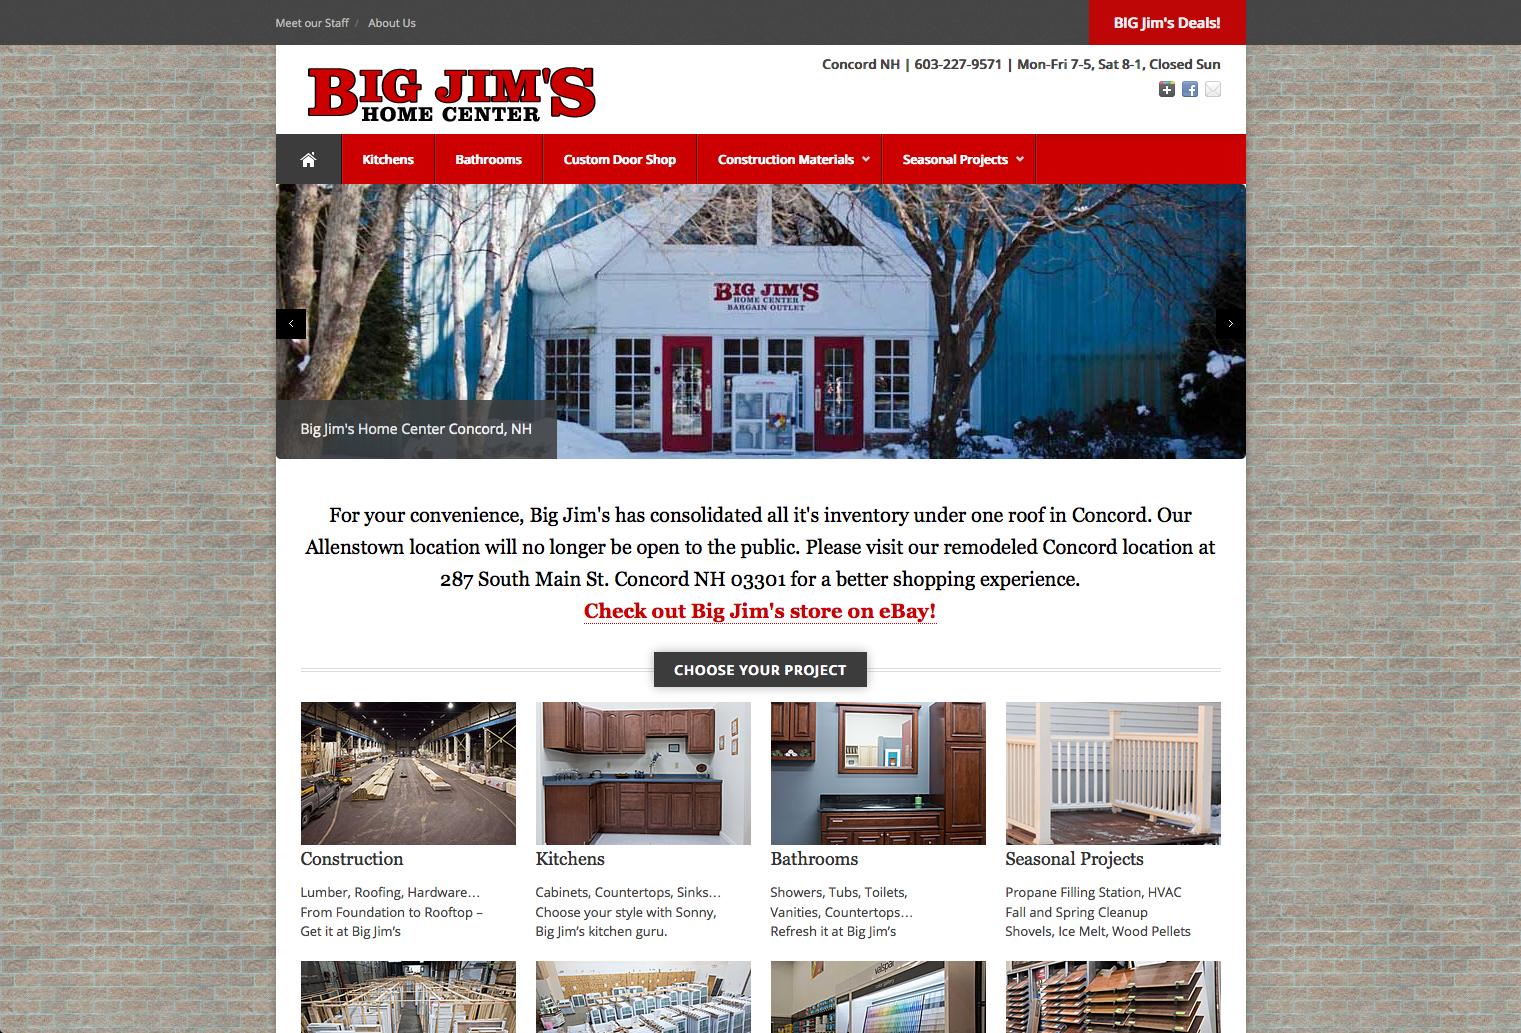 Big Jim's Home Center